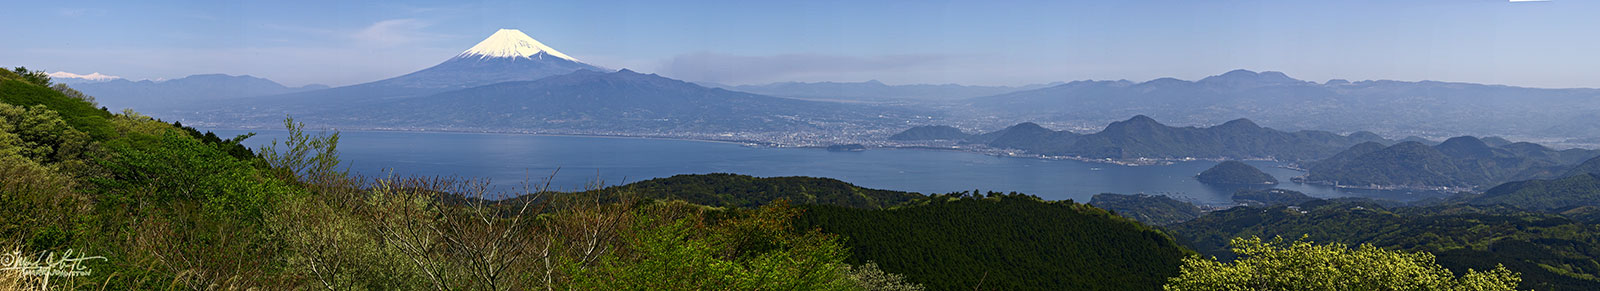 Mt. Fuji and the city of Numazu from the spine of Japan's Izu Penninsula, Shizuoka Prefecture.